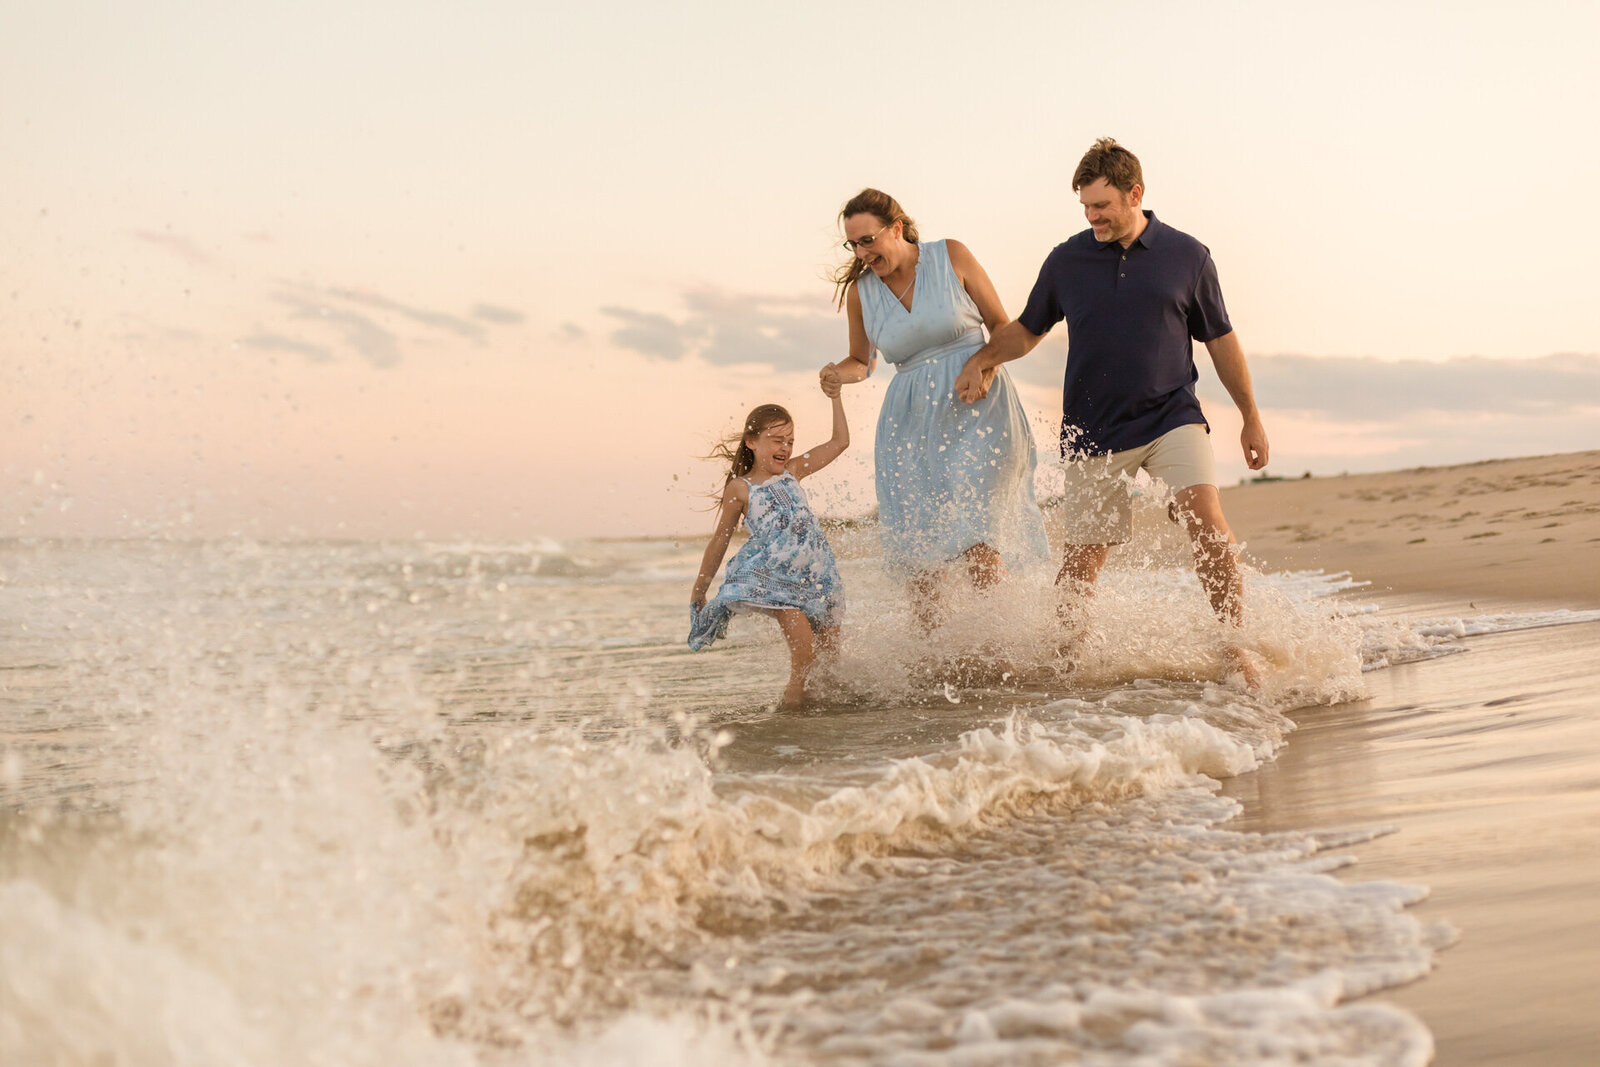 Beach Laughing Family of Three Lifestyle Photo